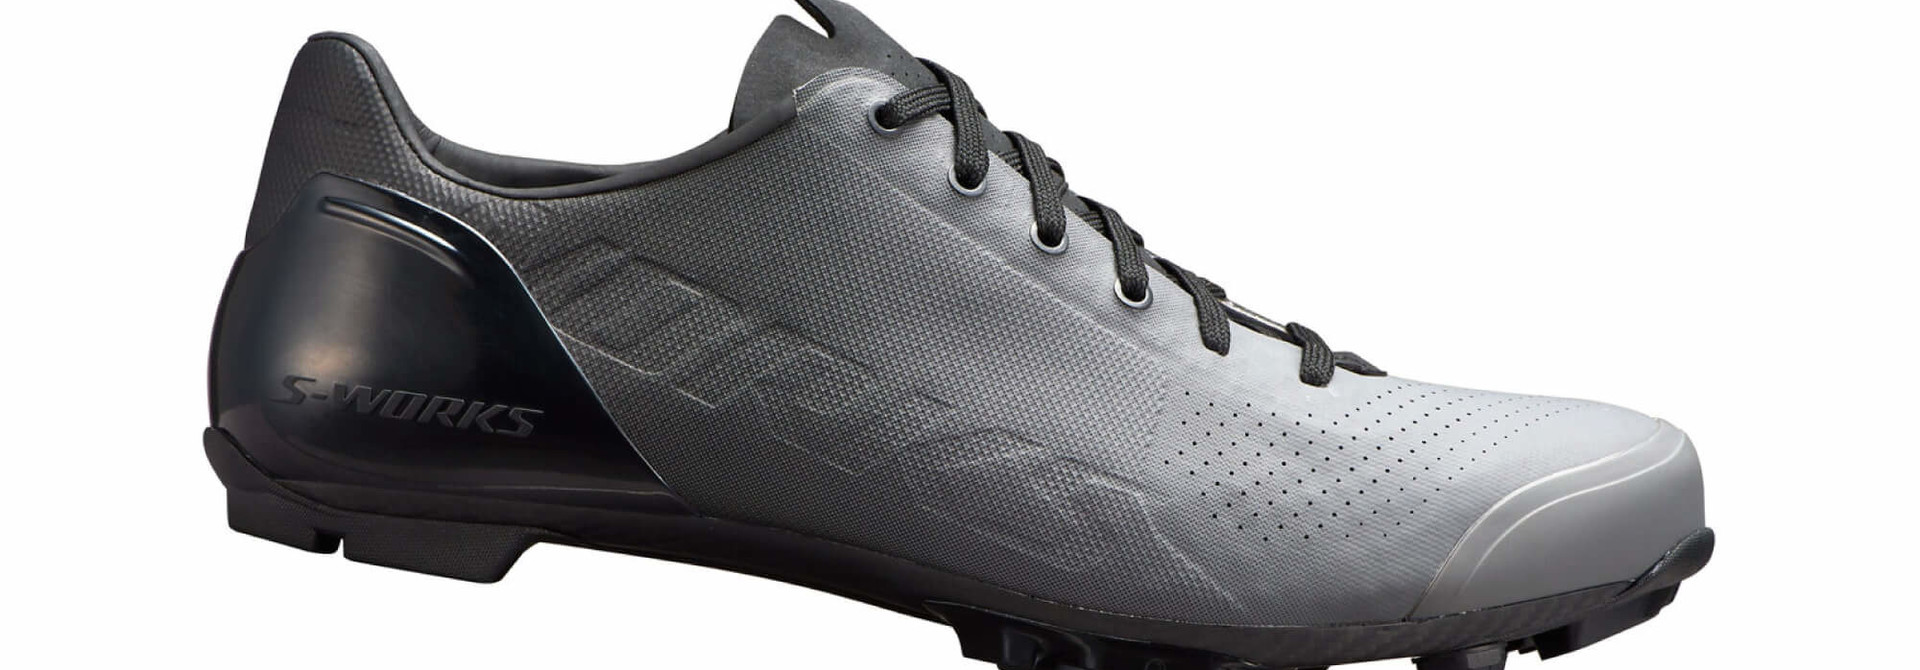 S-Works Recon Lace Gravel Shoes